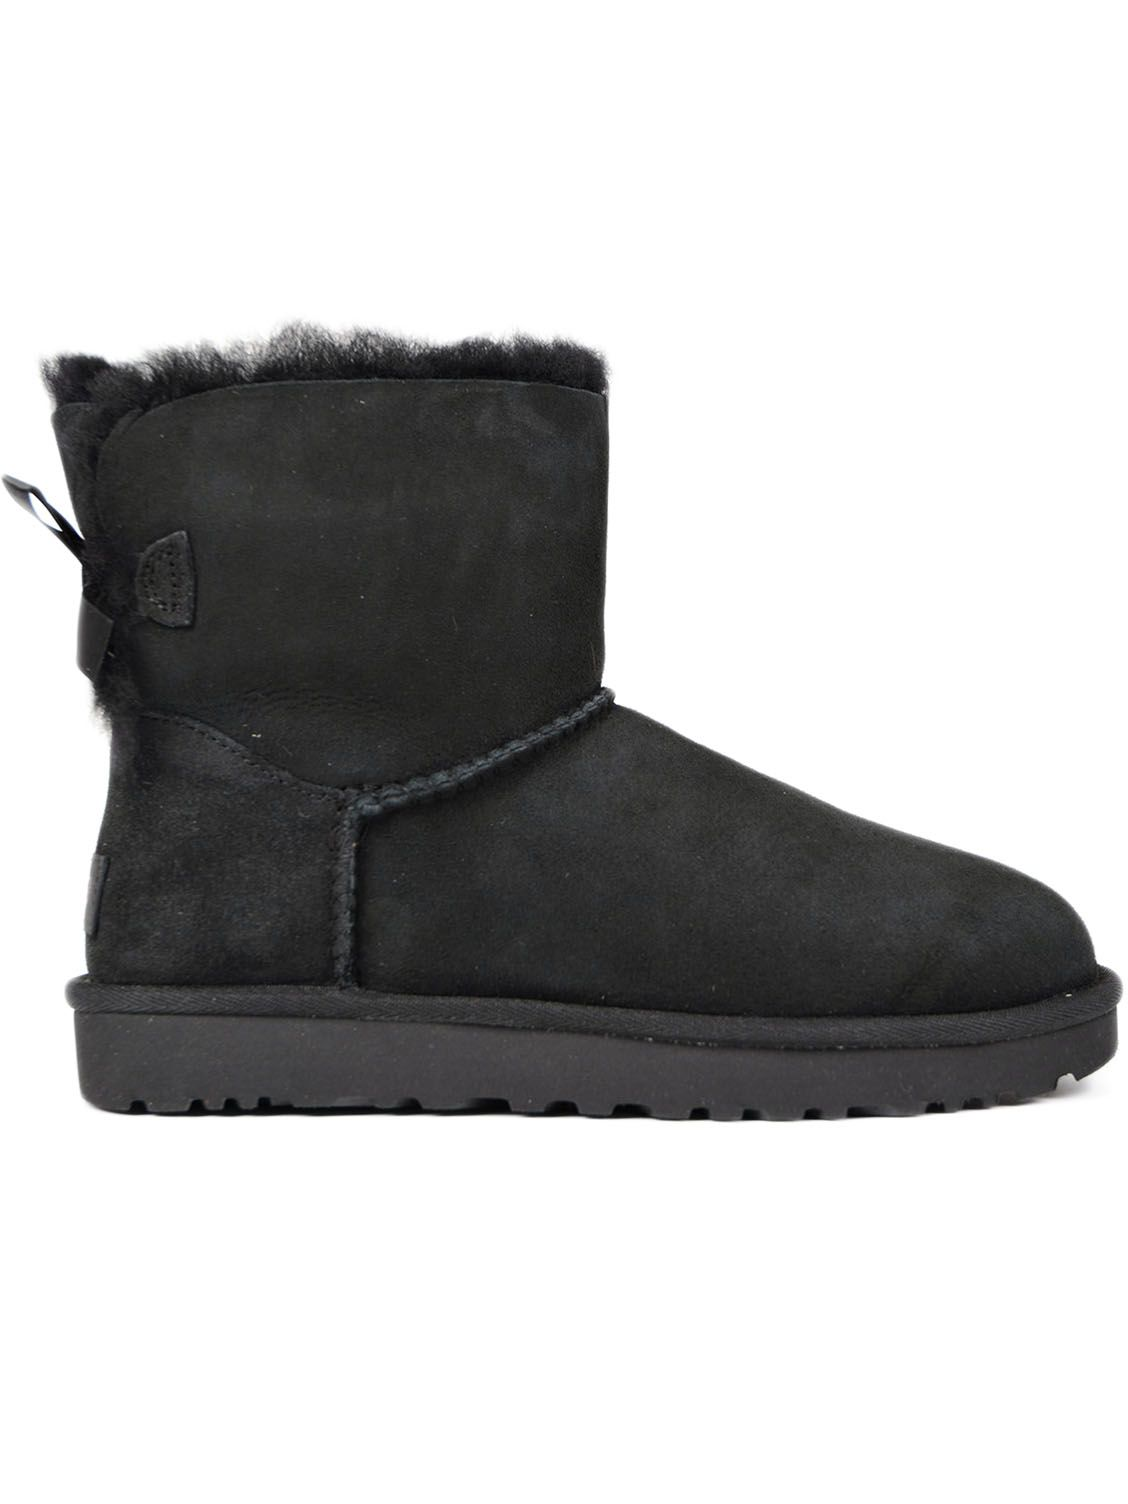 UGG Bailey Bow Ankle Boots